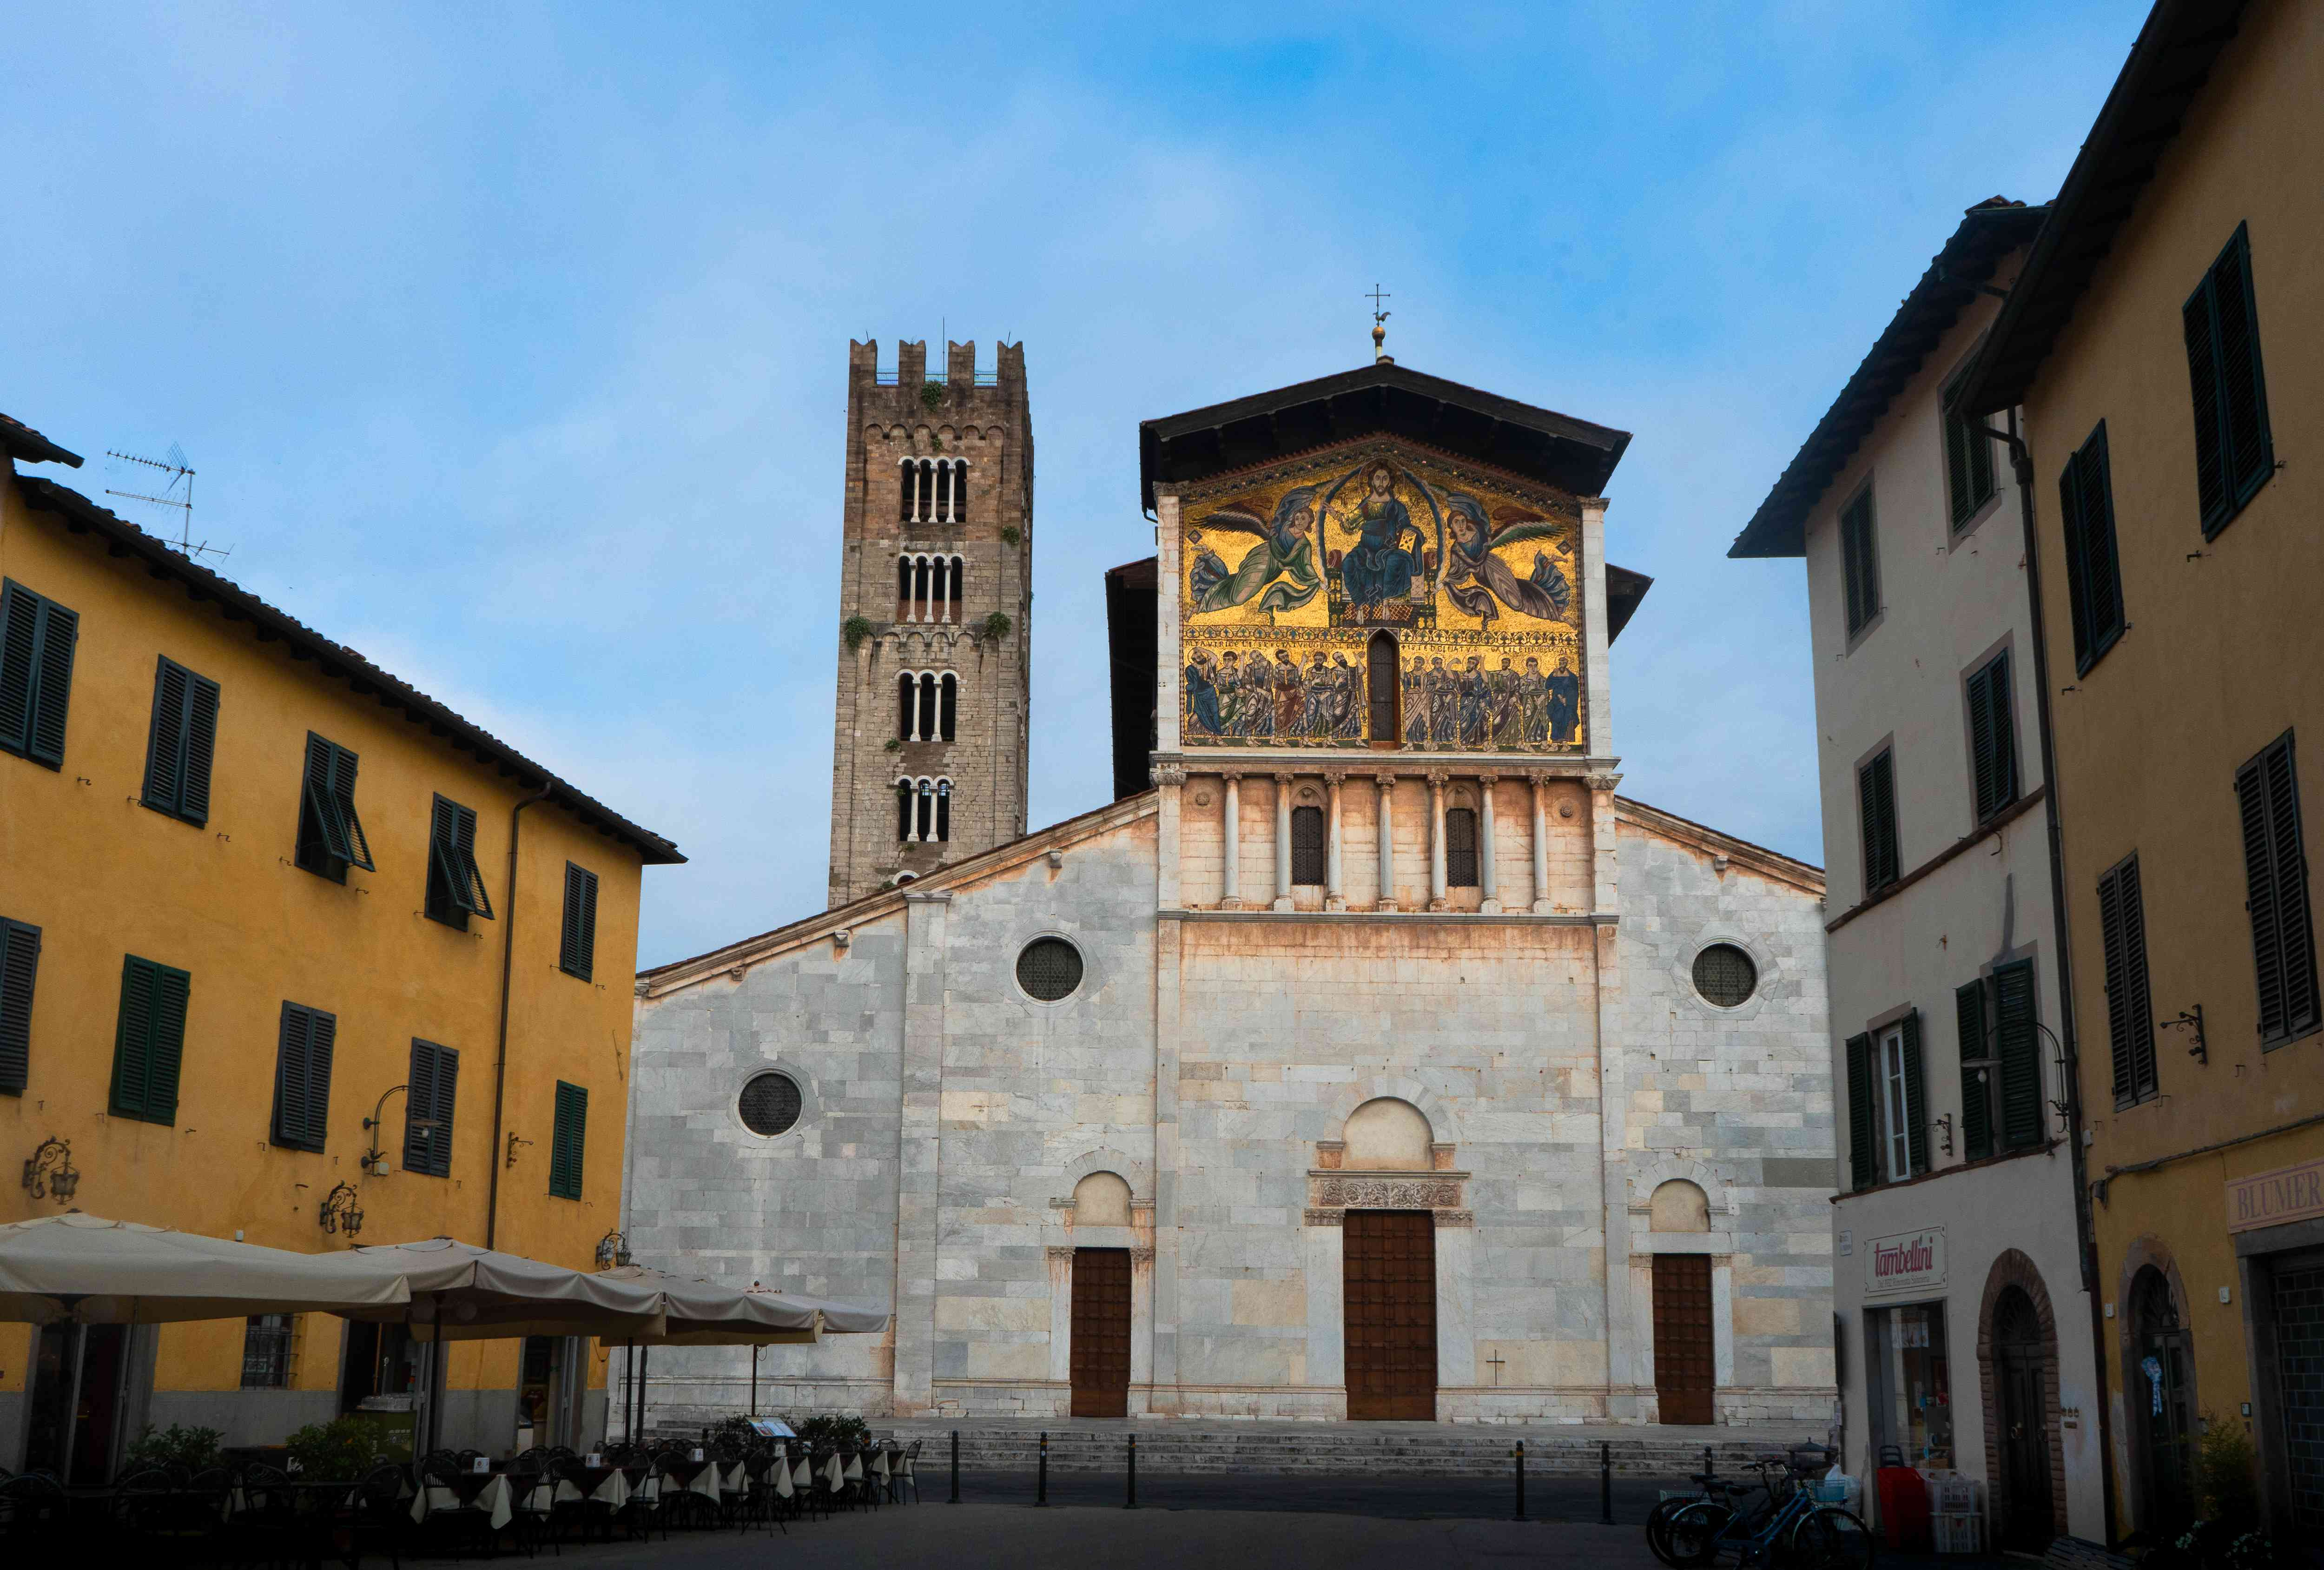 The exterior of the San Frediano Church